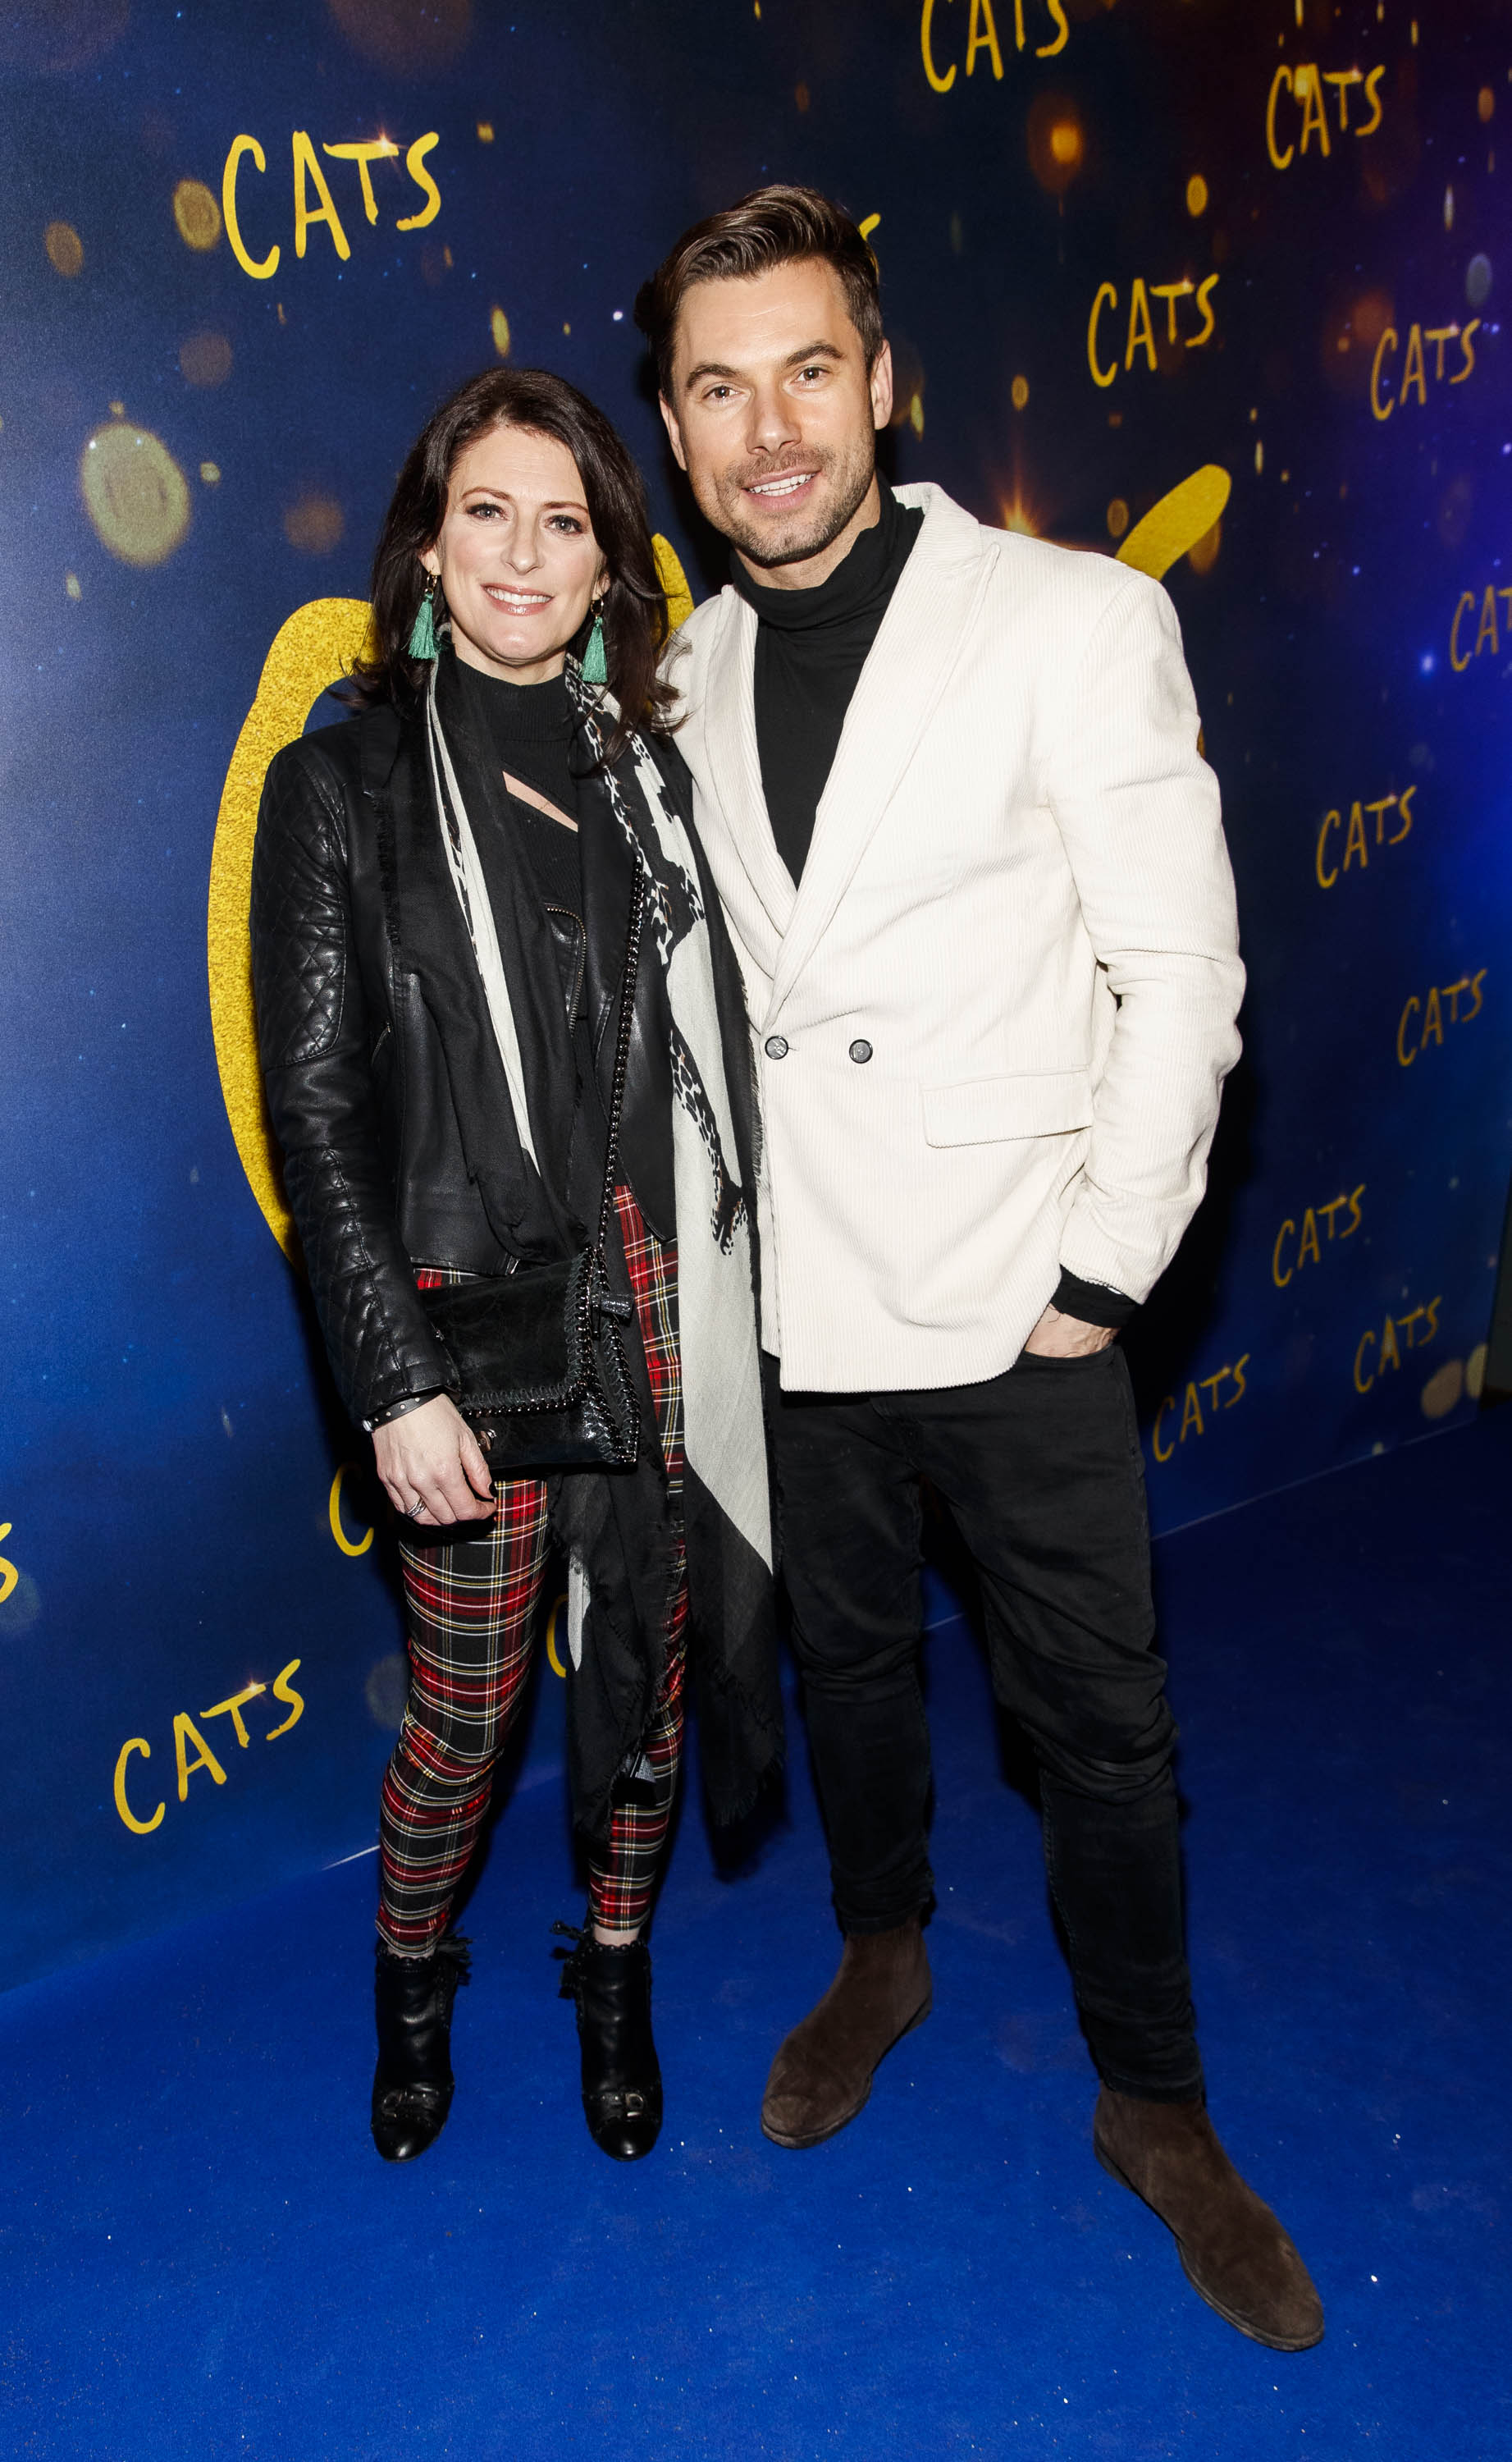 Sinead O Carroll and Robert Rowinski pictured at the Irish premiere screening of 'Cats' at The Stella Theatre, Rathmines. Picture: Andres Poveda